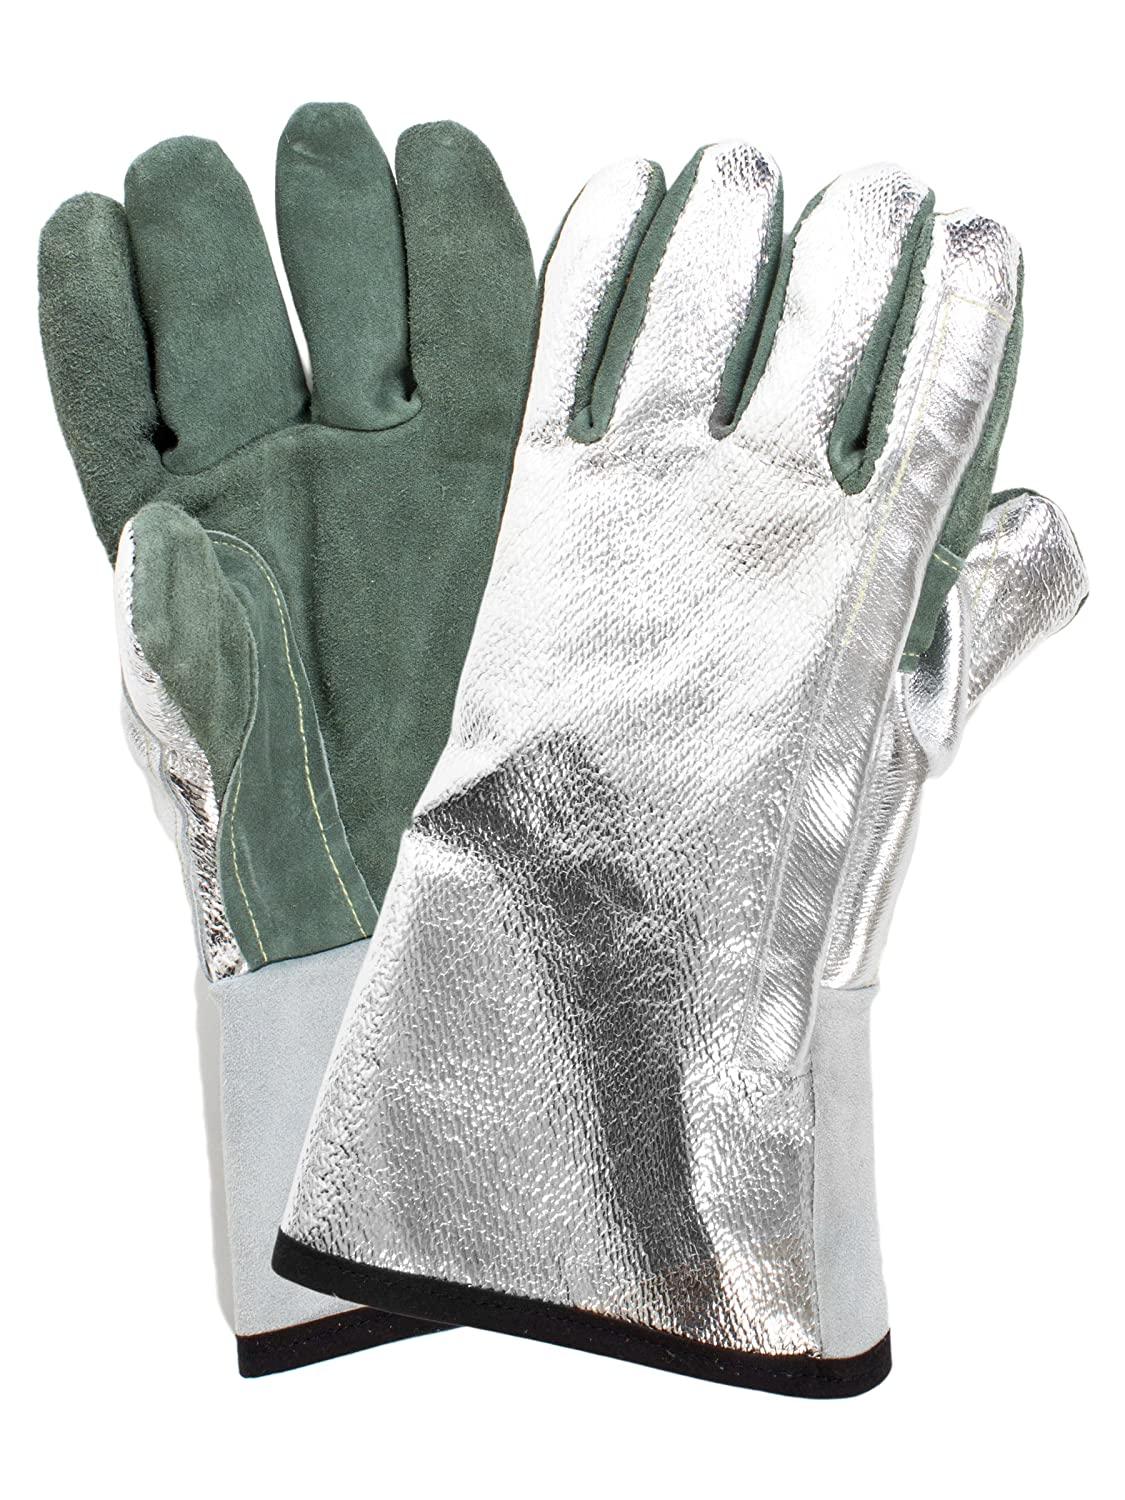 National Safety Apparel DJXGSP382 Fusion Carbon Kevlar Glove with Thermal Leather Palm, Regular, Aluminized Back/Green Palm by National Safety Apparel Inc B004HR92N8